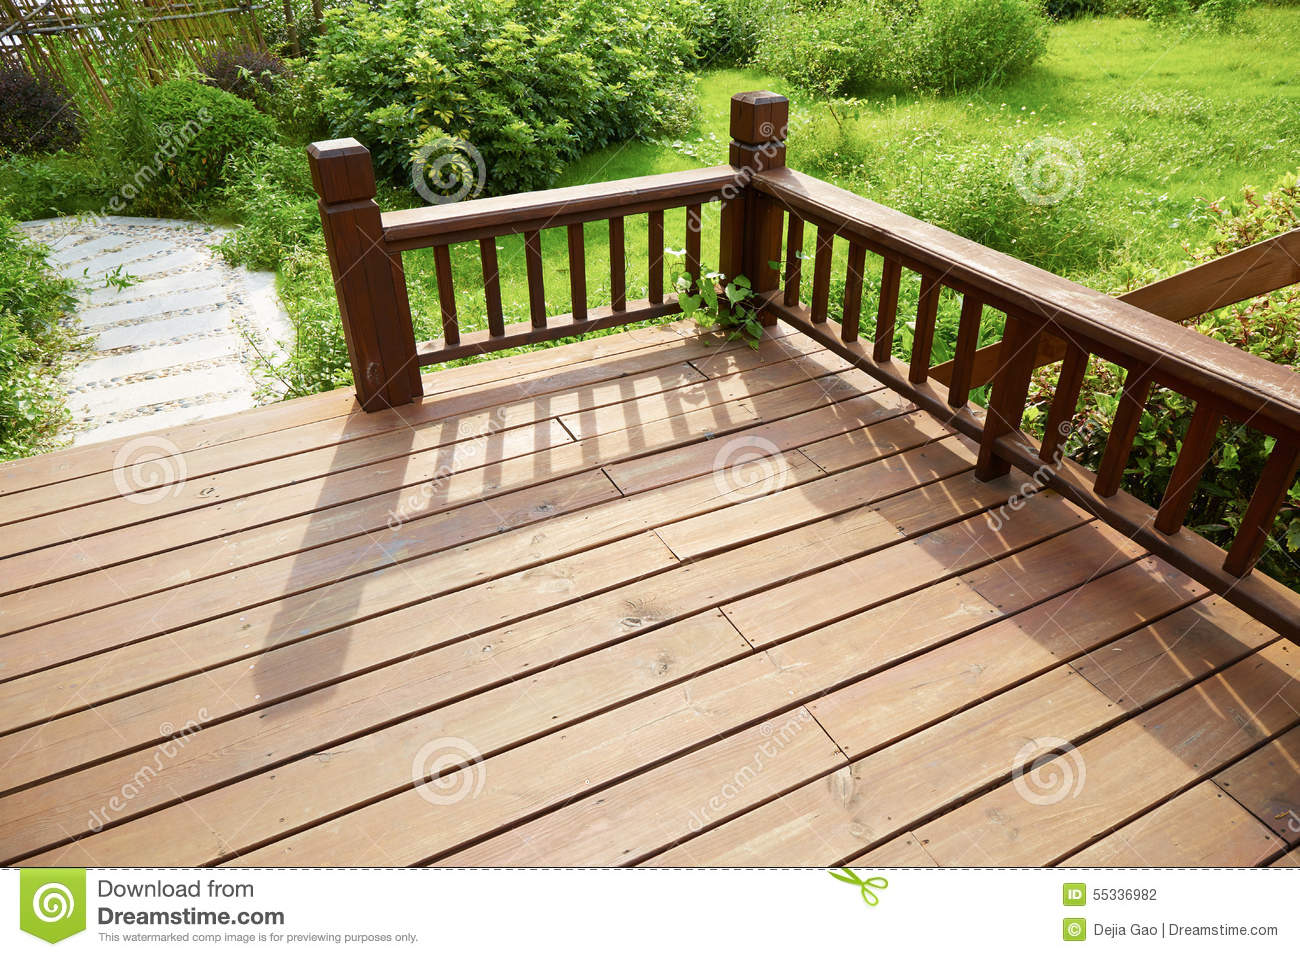 Genial House Wooden Deck Wood Outdoor Backyard Patio In Garden